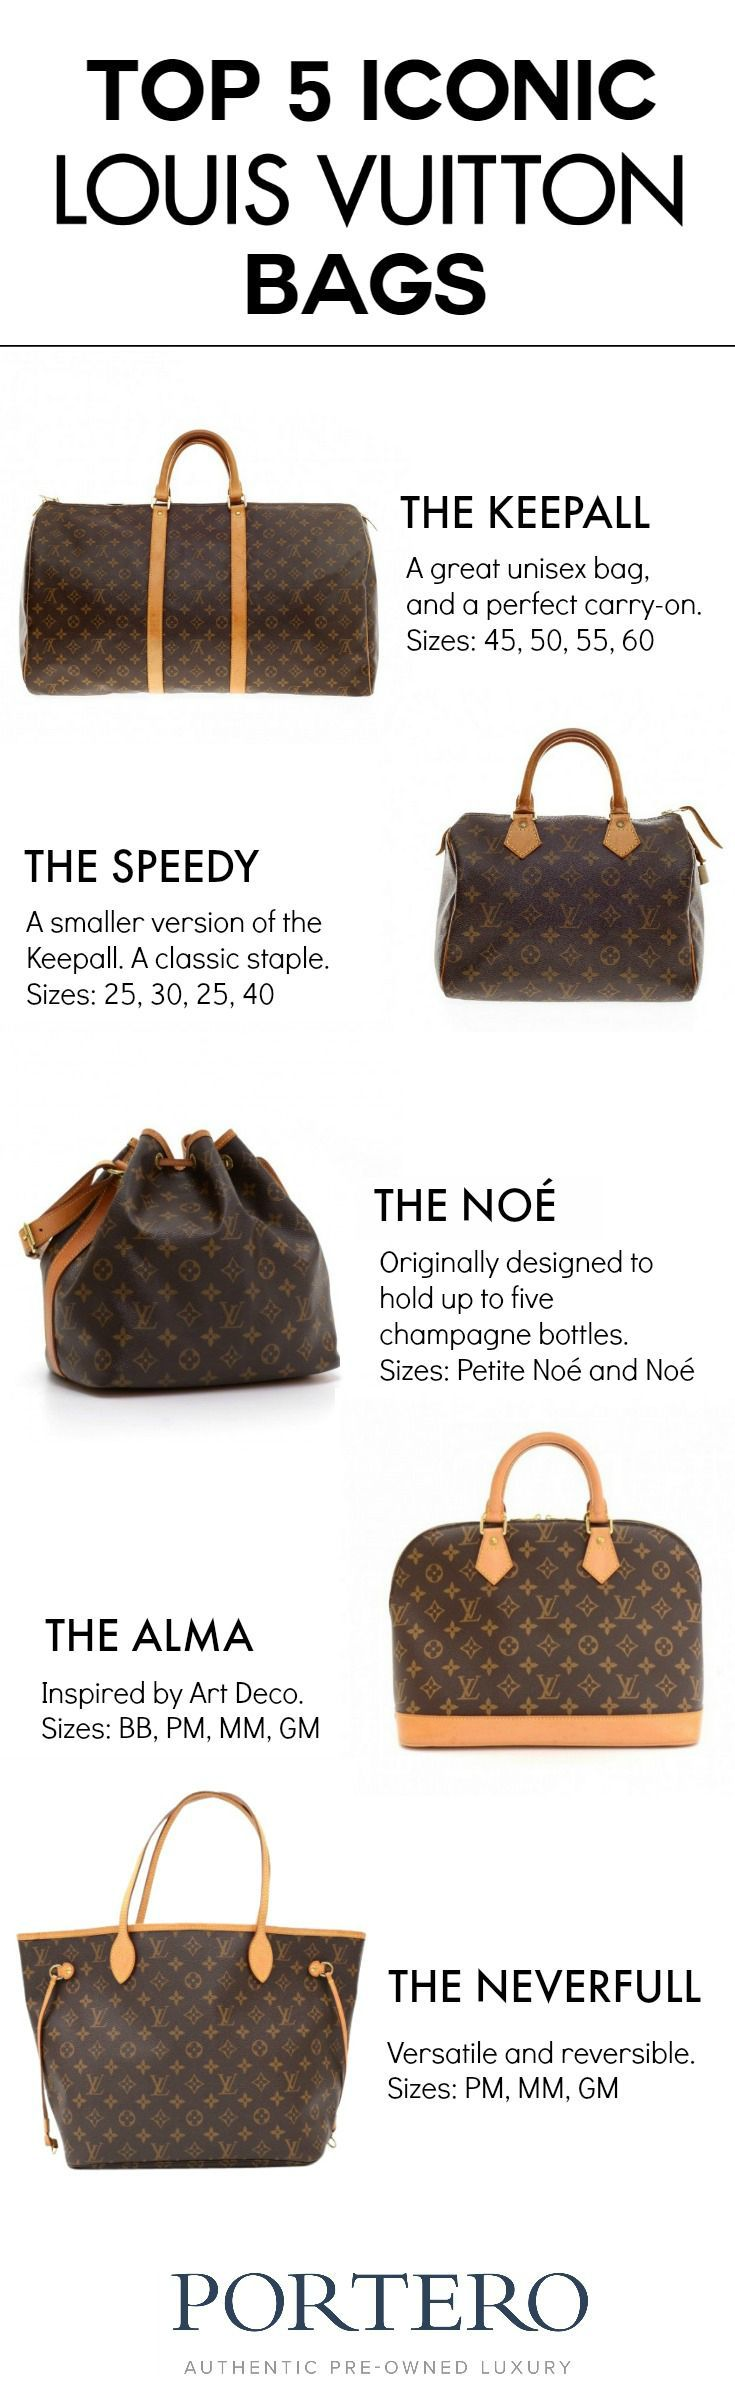 louis vuitton iconic bags